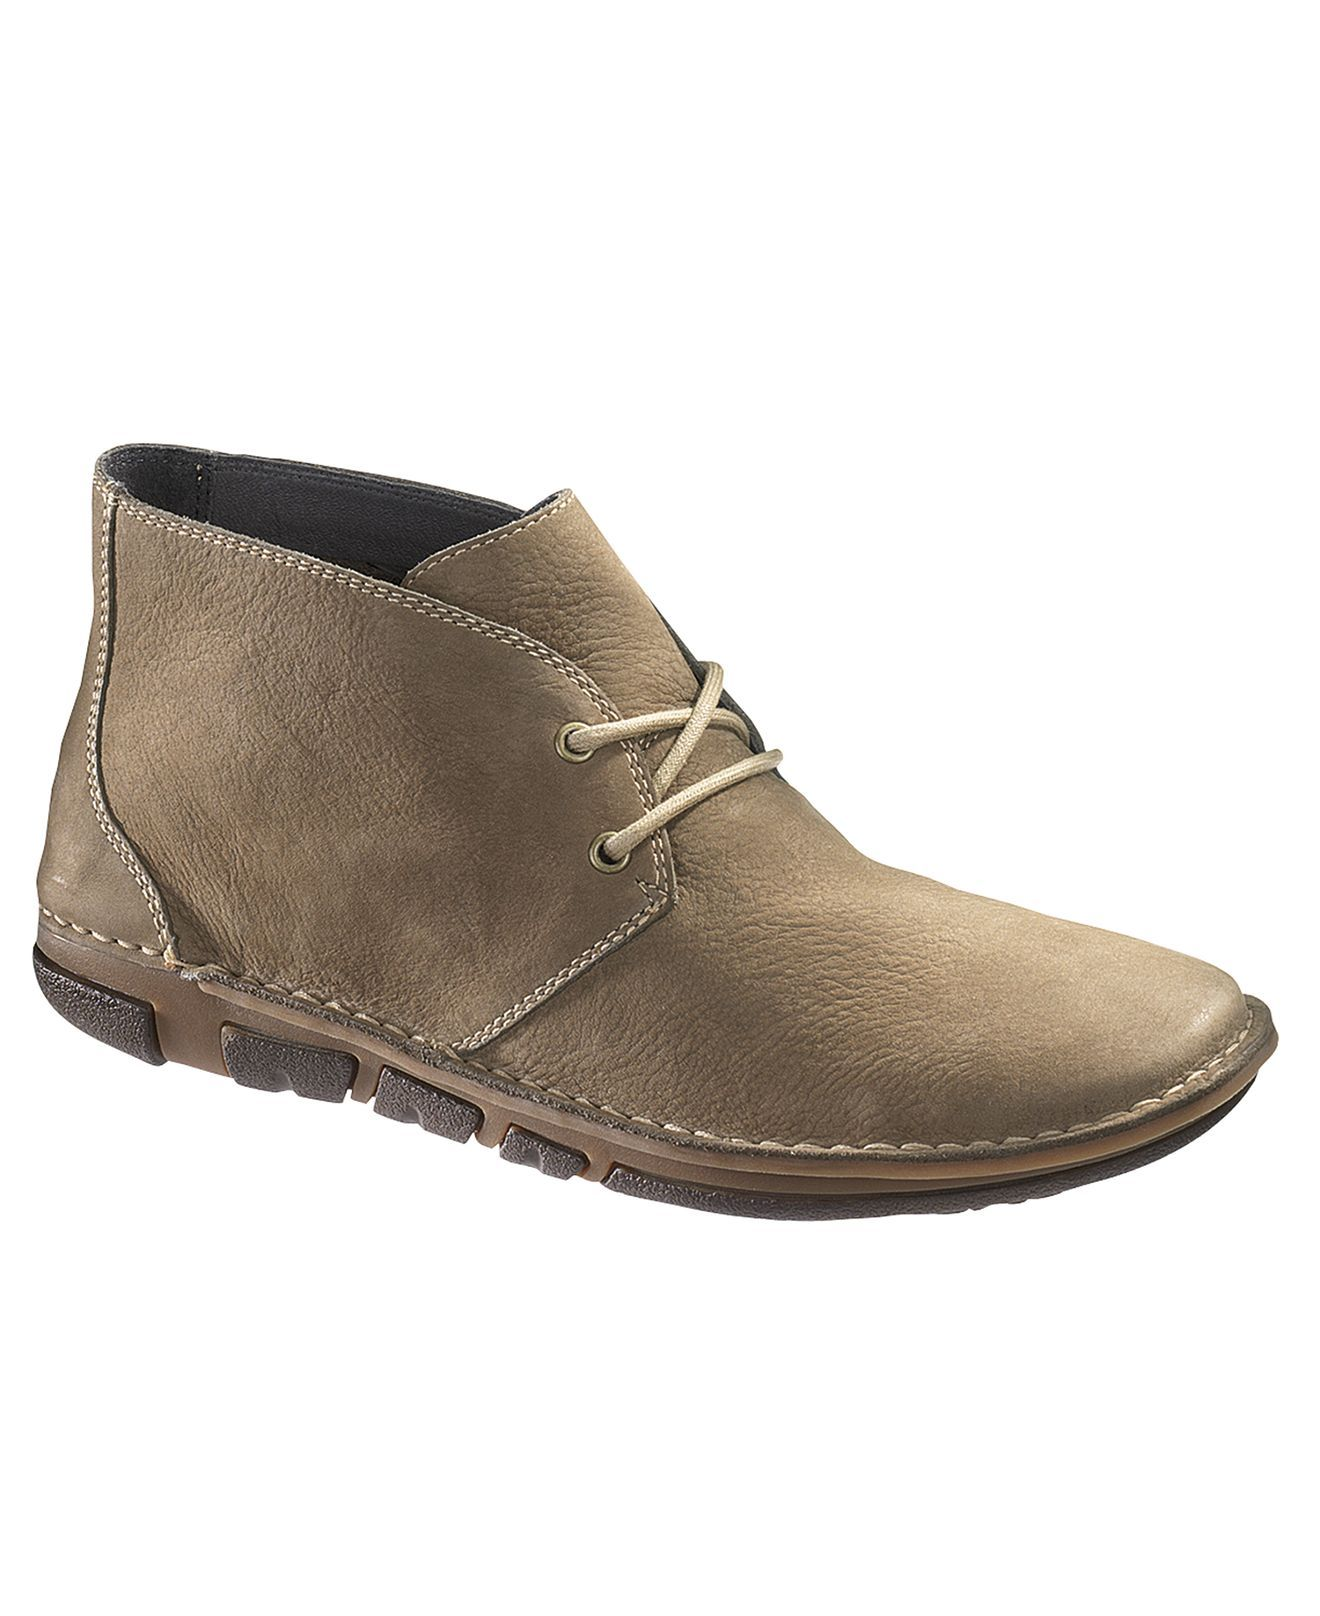 Hush Puppies Shoes Hang Out Chukka Boots Boots Men Macy S Chukka Boots Hush Puppies Shoes Boots